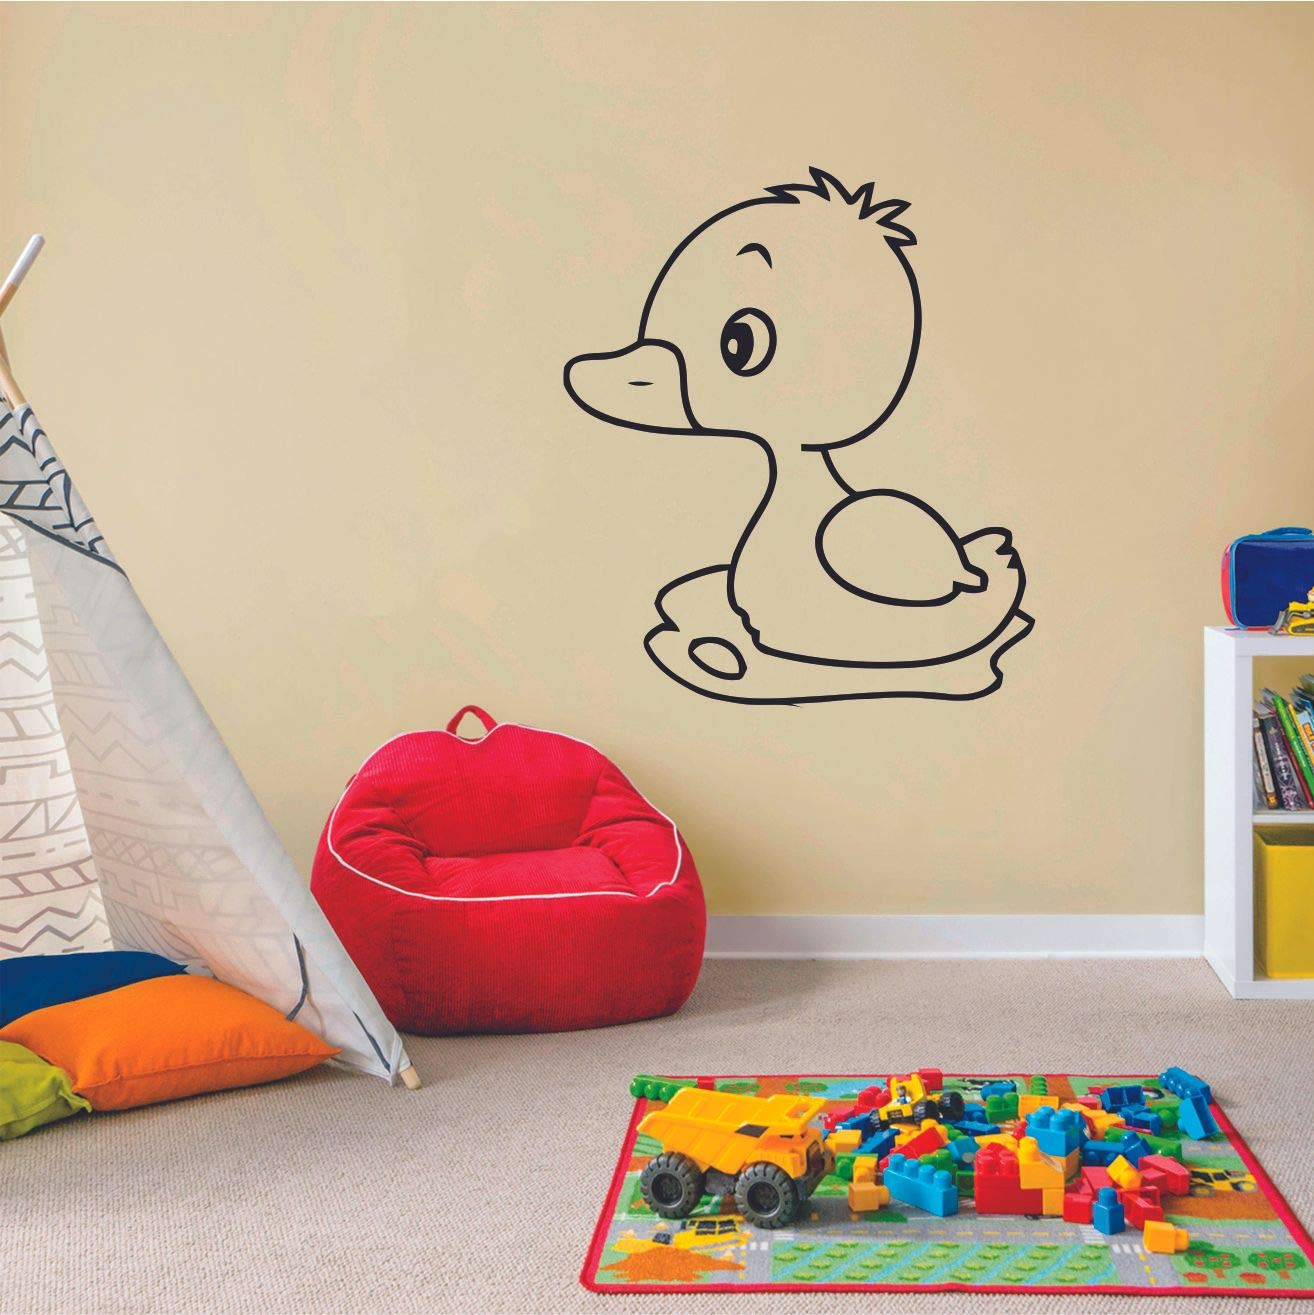 Cute Baby Duck Ducks Animals Animal Children Cartoon Wall Sticker Art Decal for Girls Boys Room Bedroom Nursery Kindergarten House Fun Home Decor Stickers Wall Art Vinyl Decoration Size (30x30 inch)